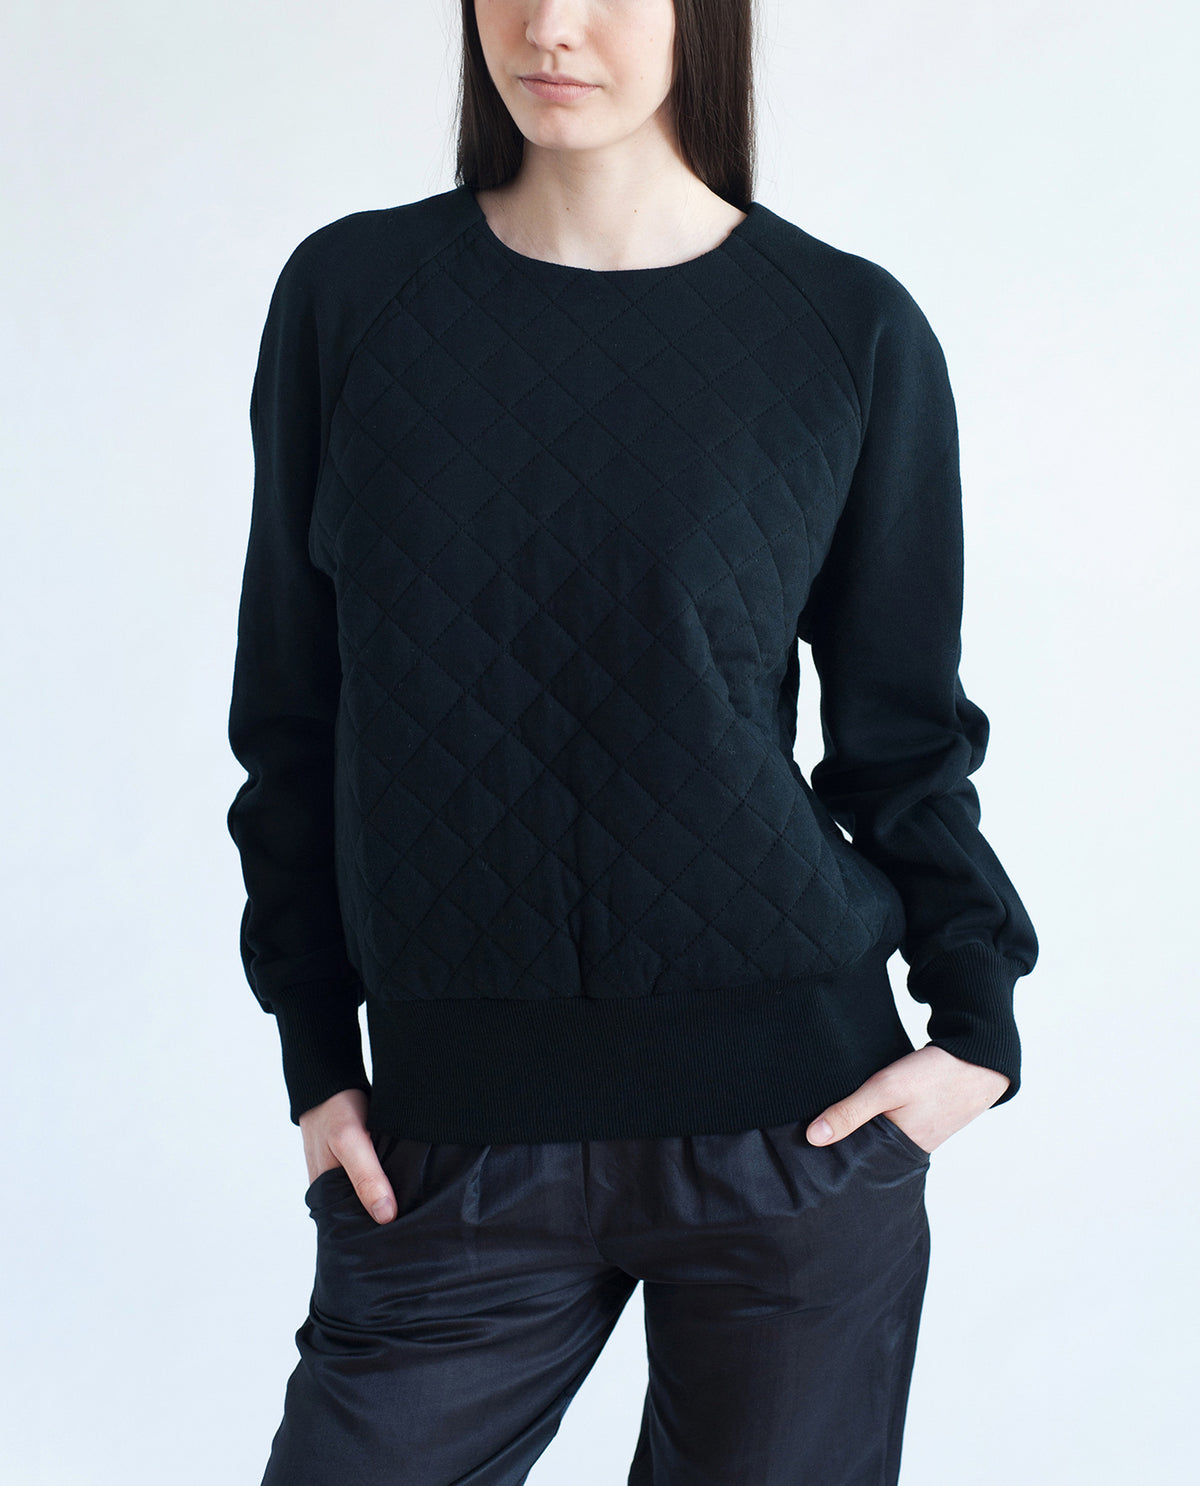 MOLLY-LOU Cotton Quilted Sweatshirt